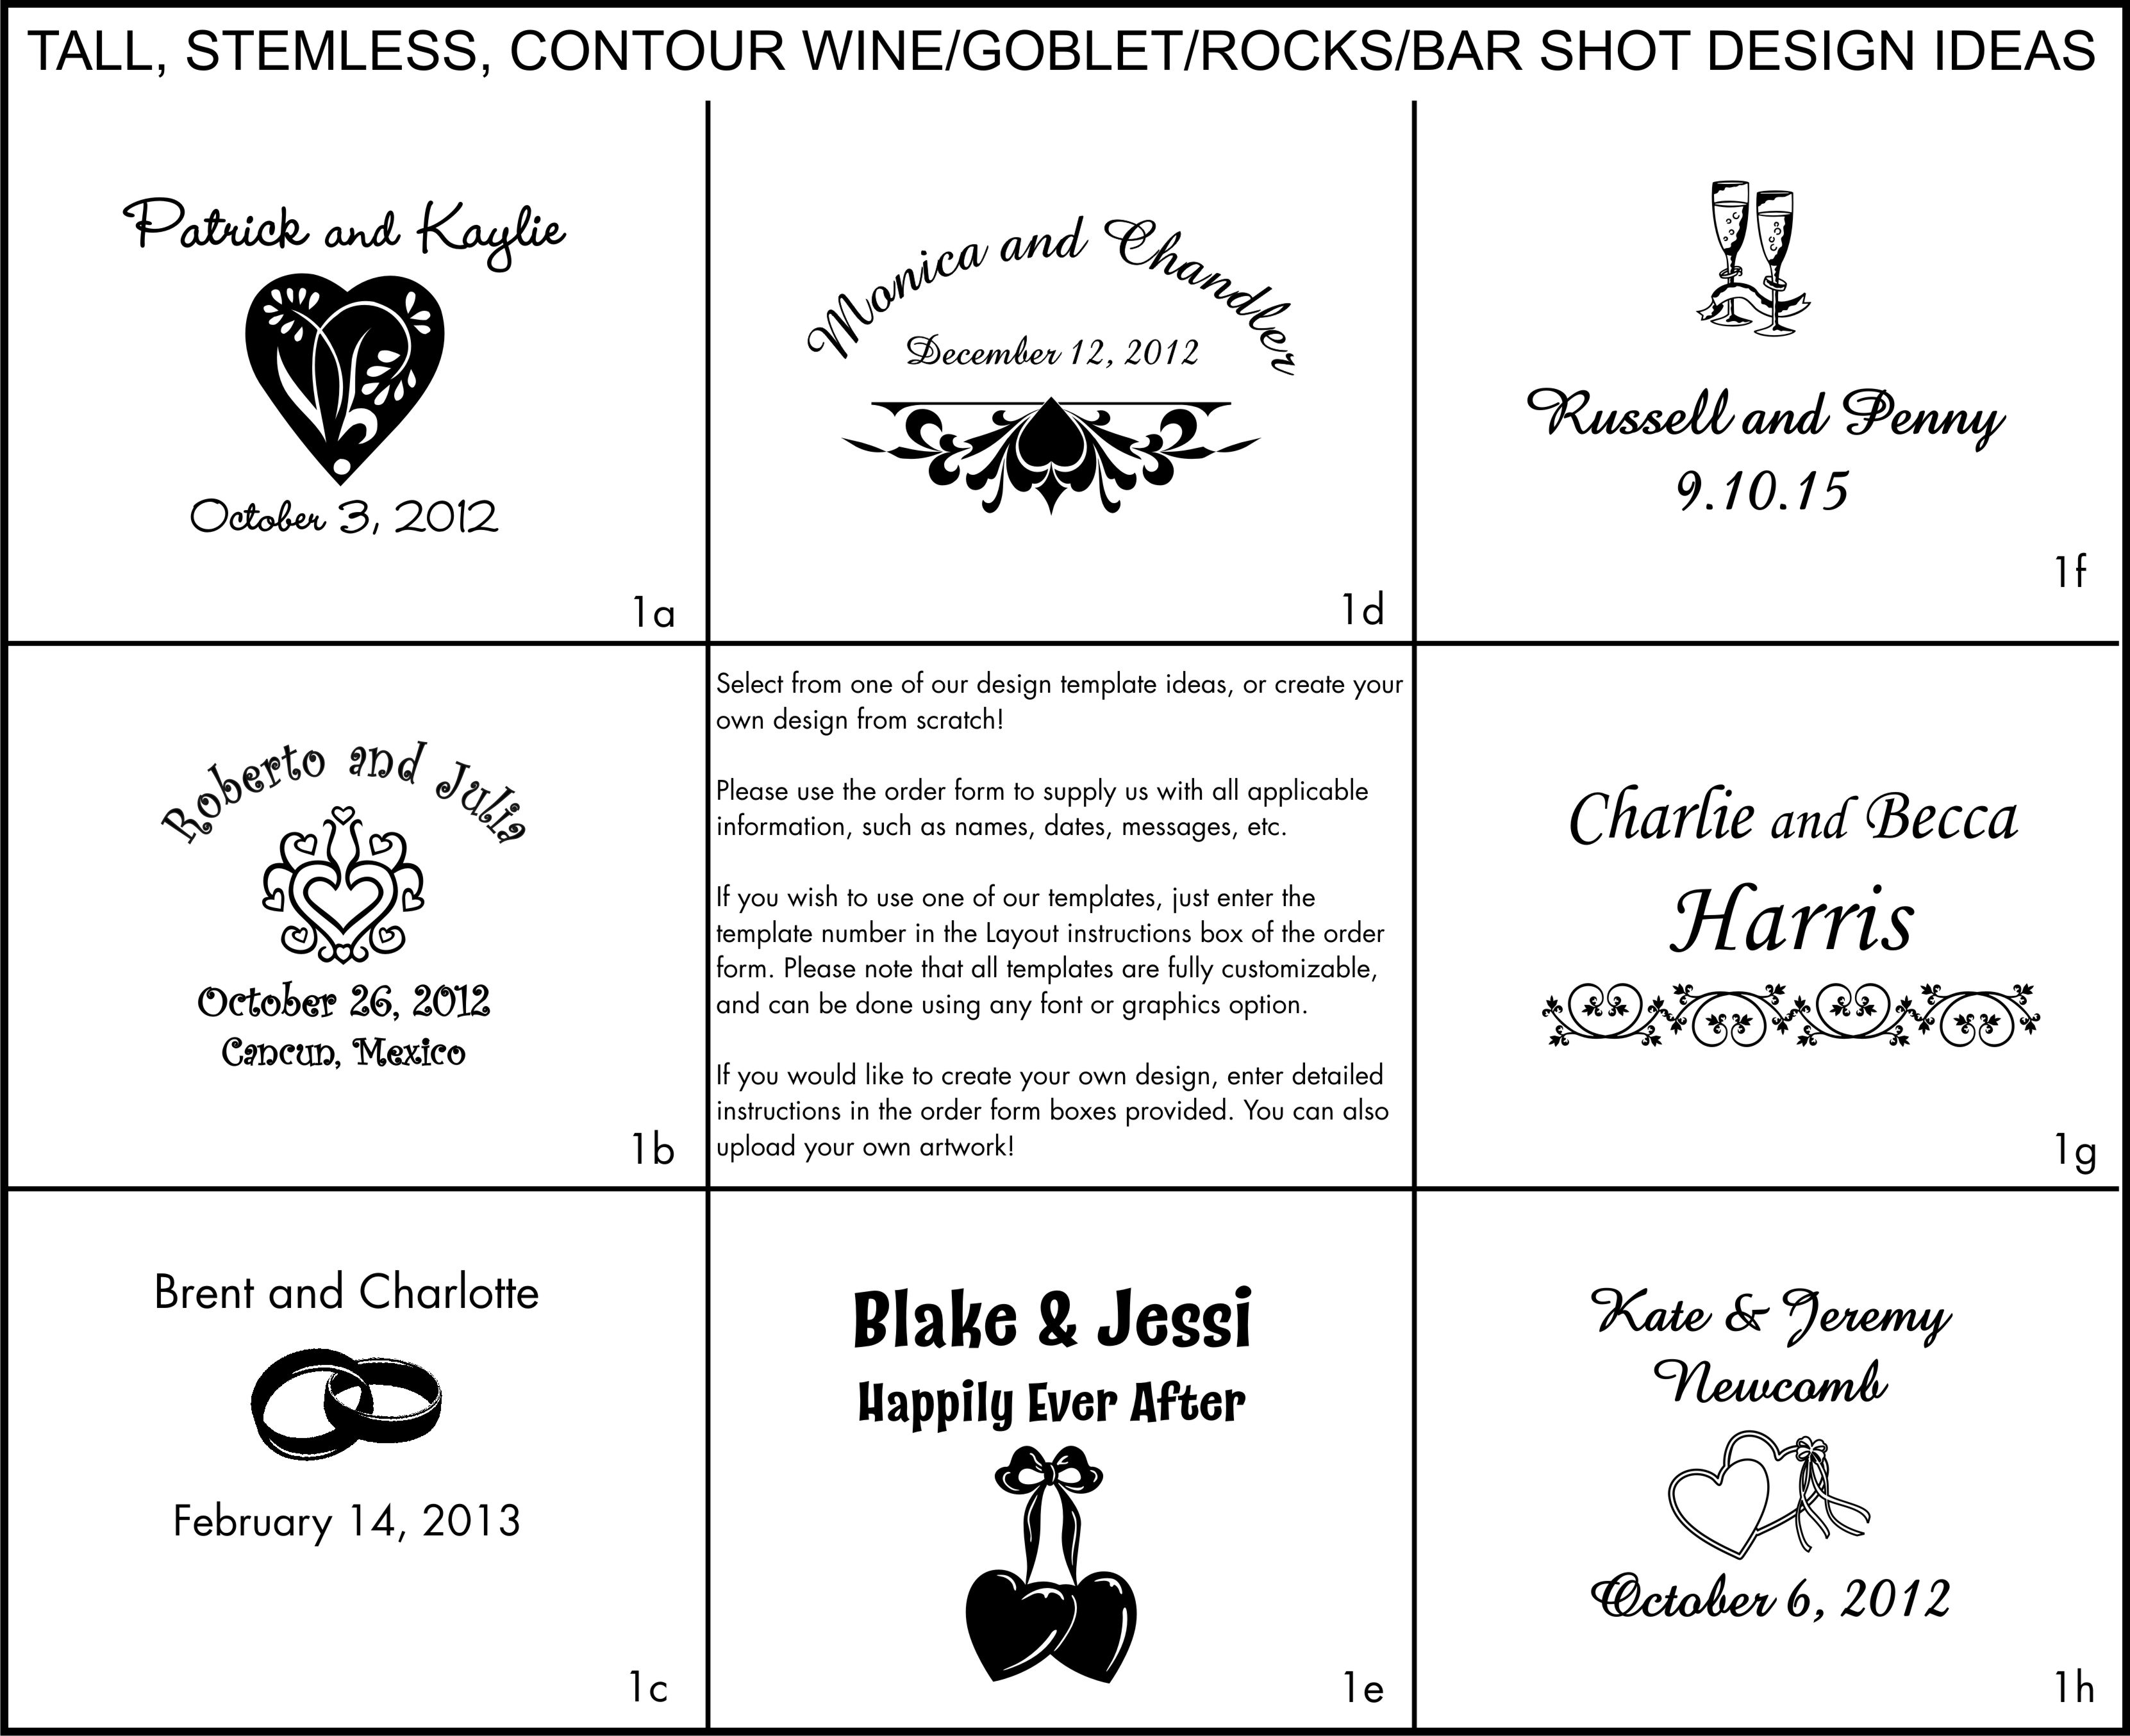 Engraving clipart glassware Engraved Wedding Glasses our For